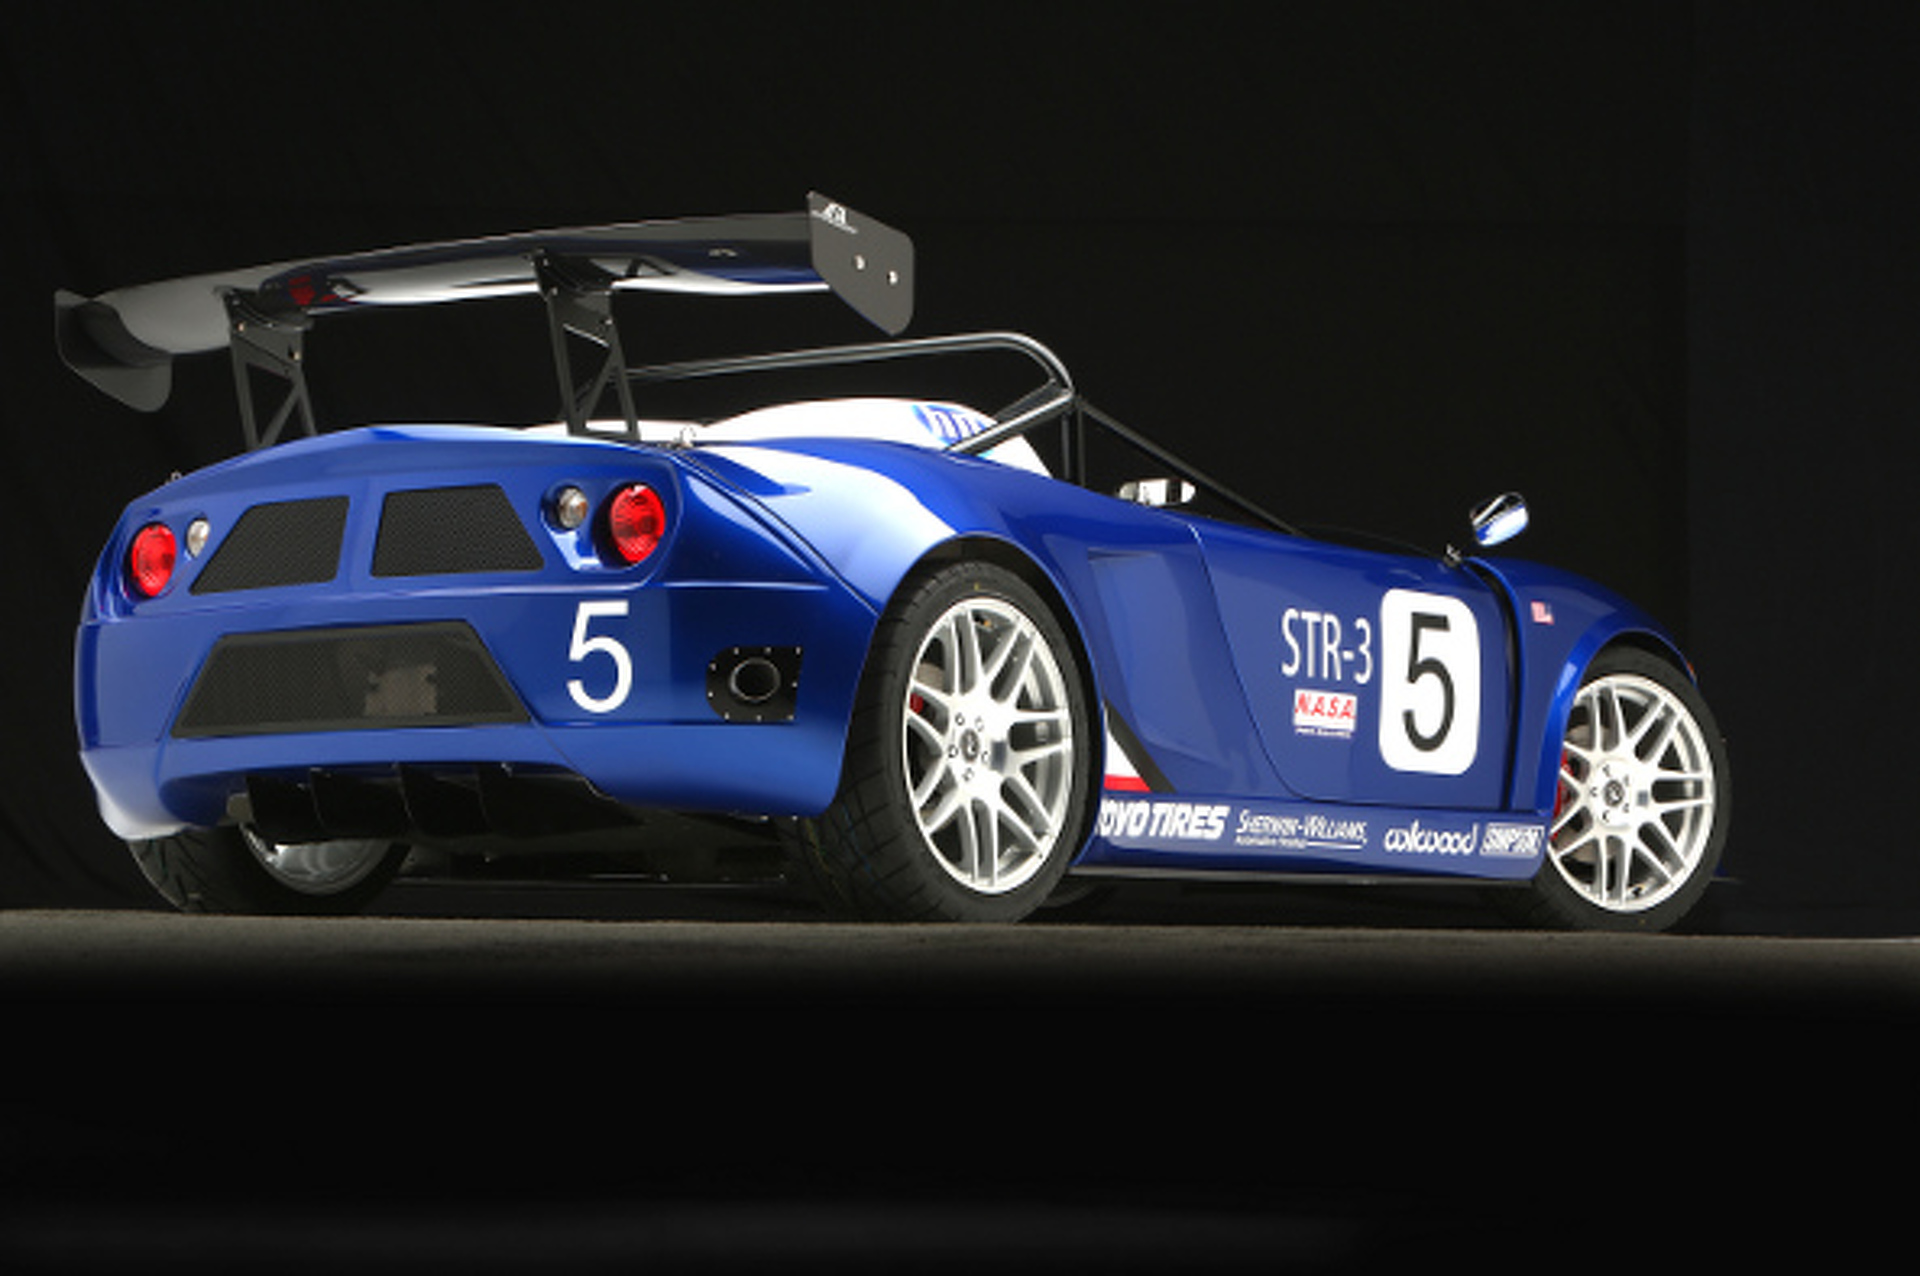 Factory Five 818: The Future of Project Cars